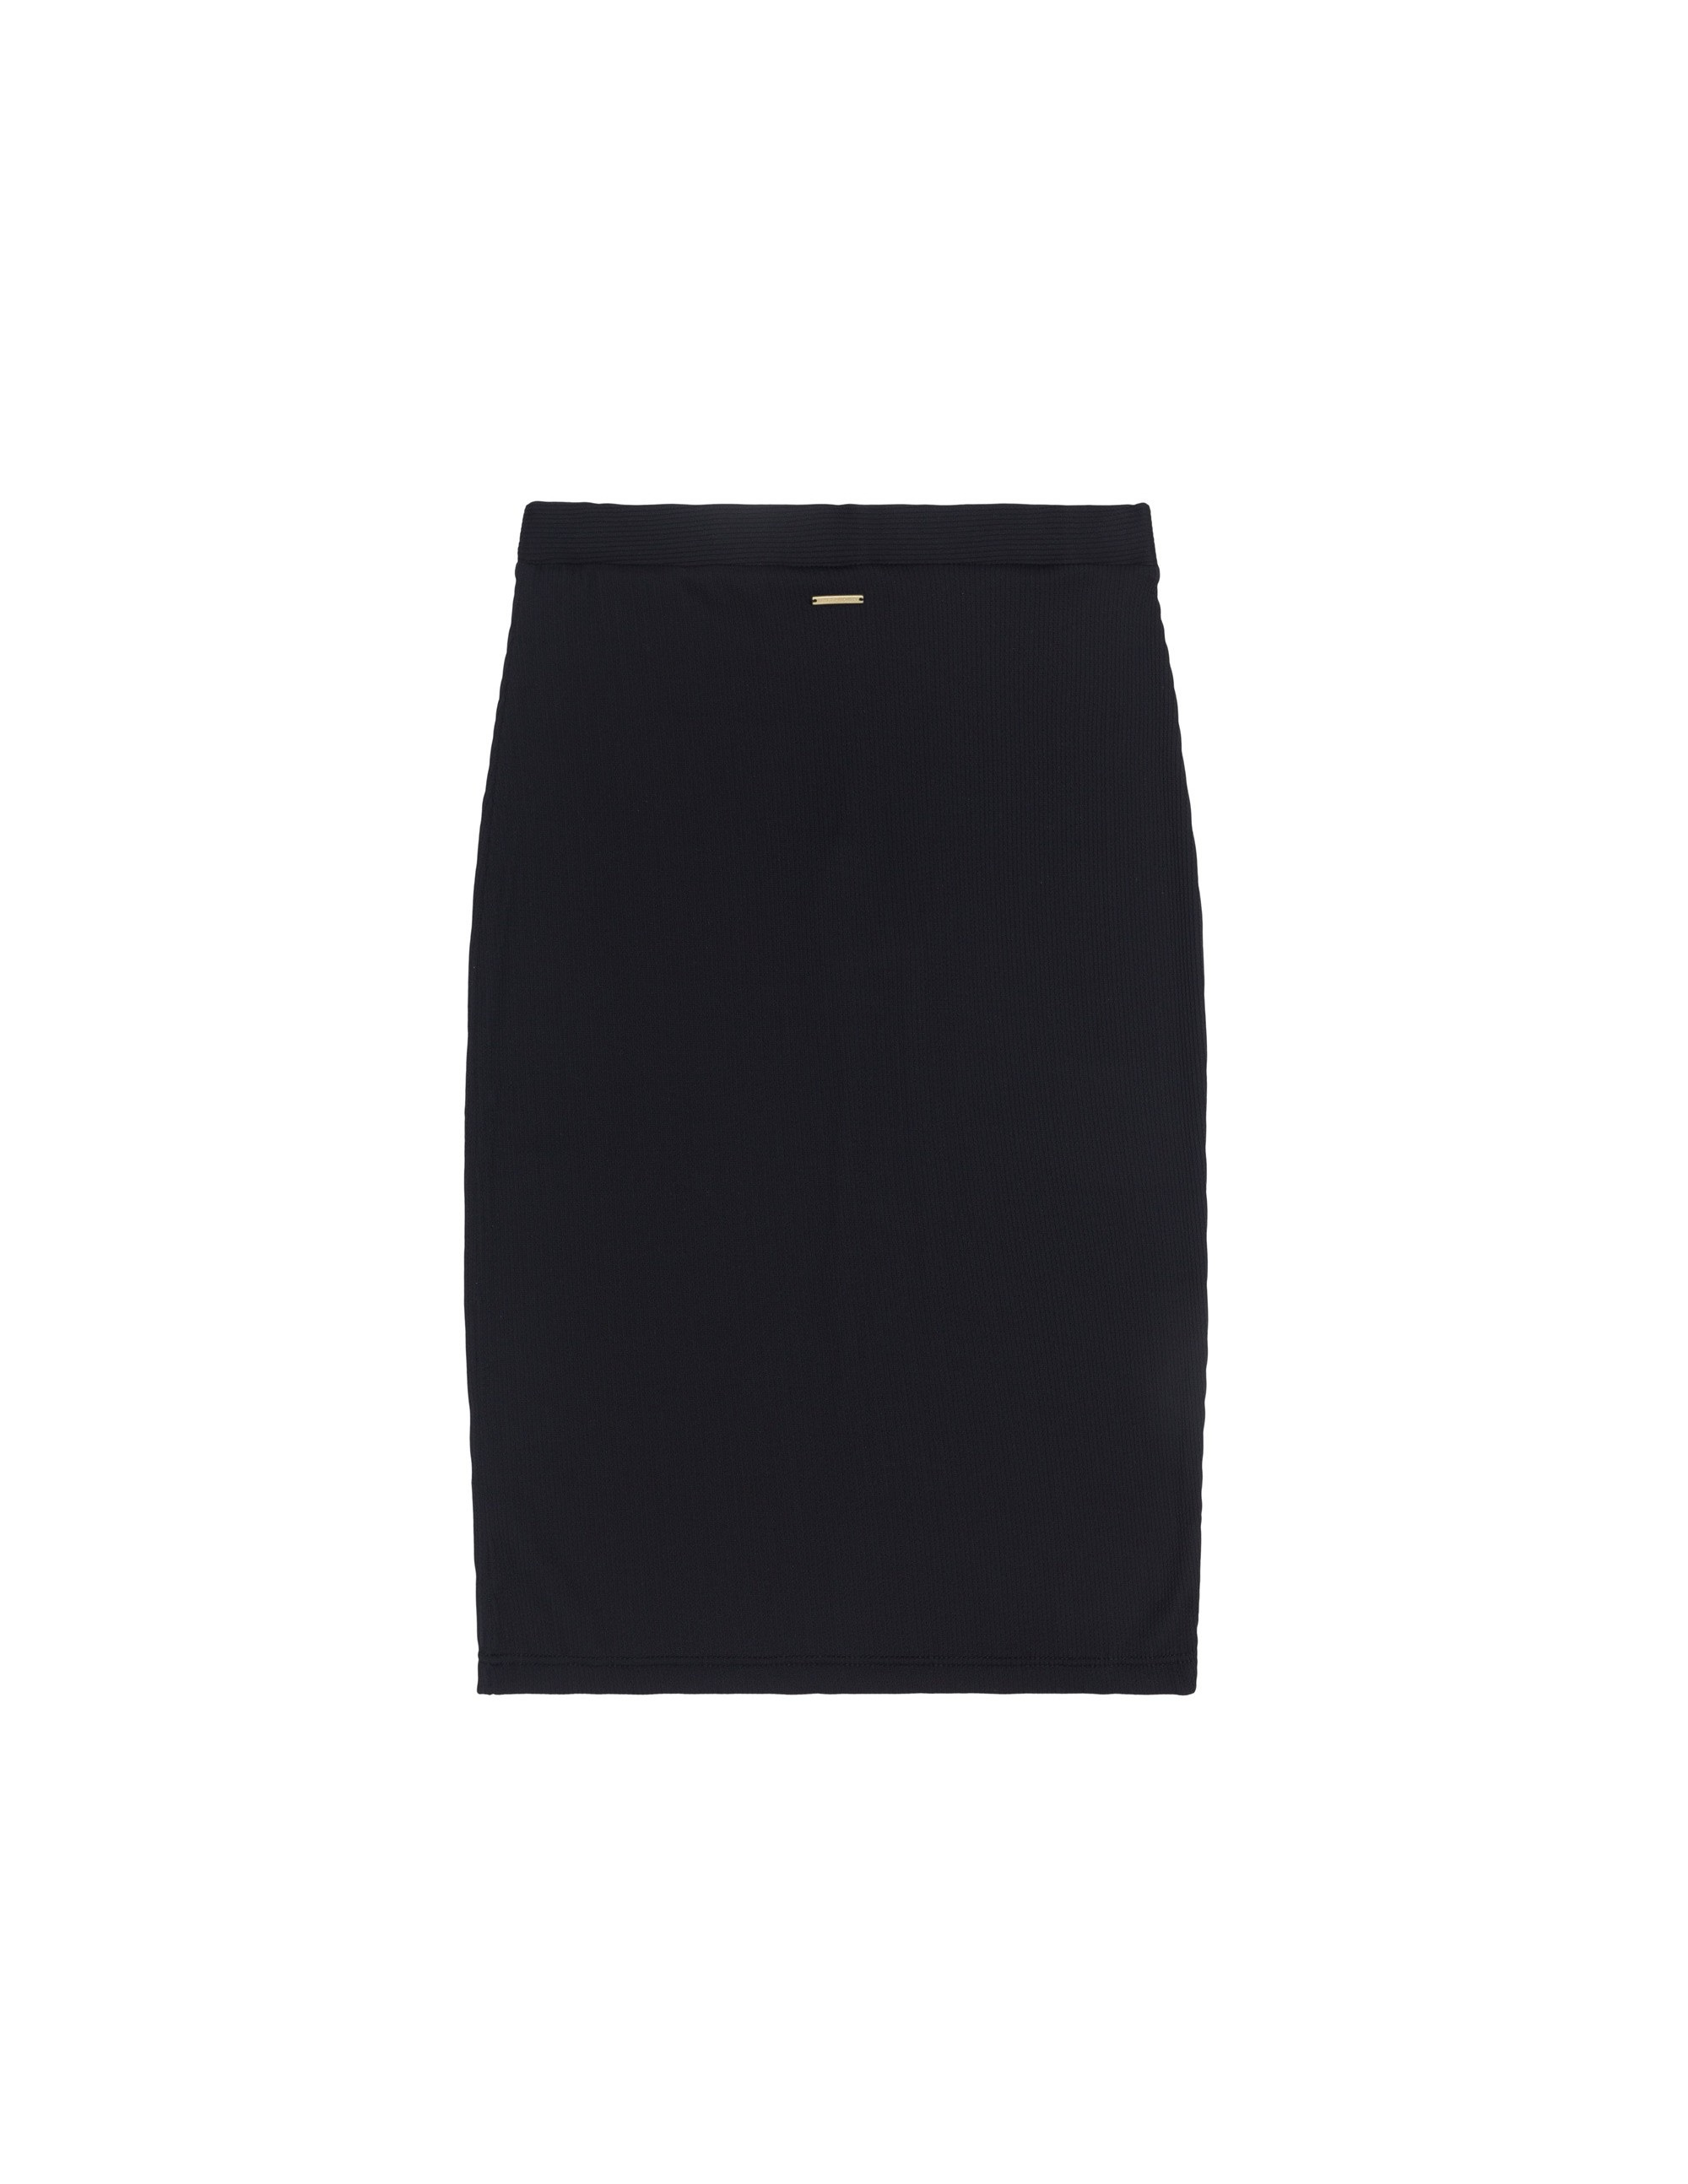 MAZIWI skirt - PANTHER